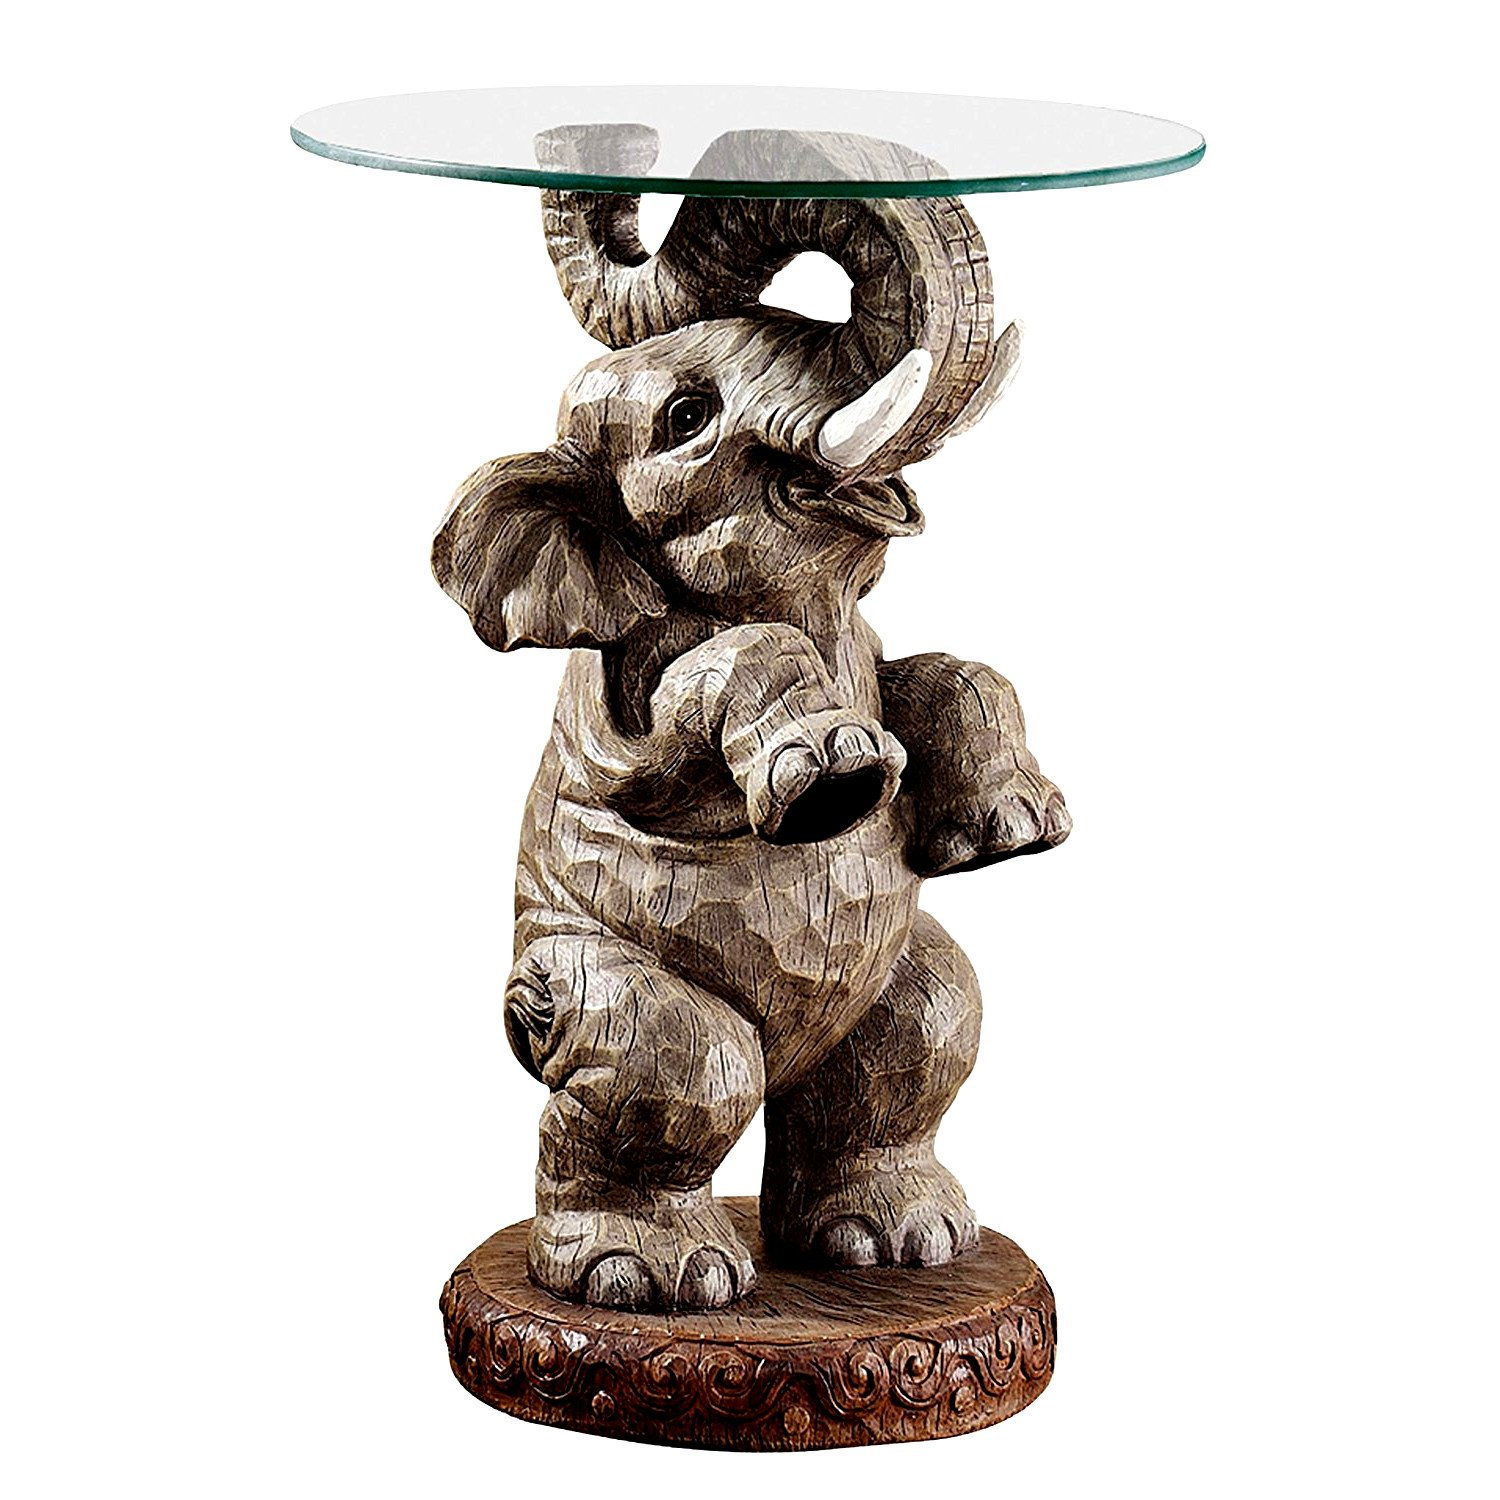 elephant side table grey animal figure for frame with glass top surface round sturdy stable elegant stylish boho design living room office home oval coffee storage ethan allen